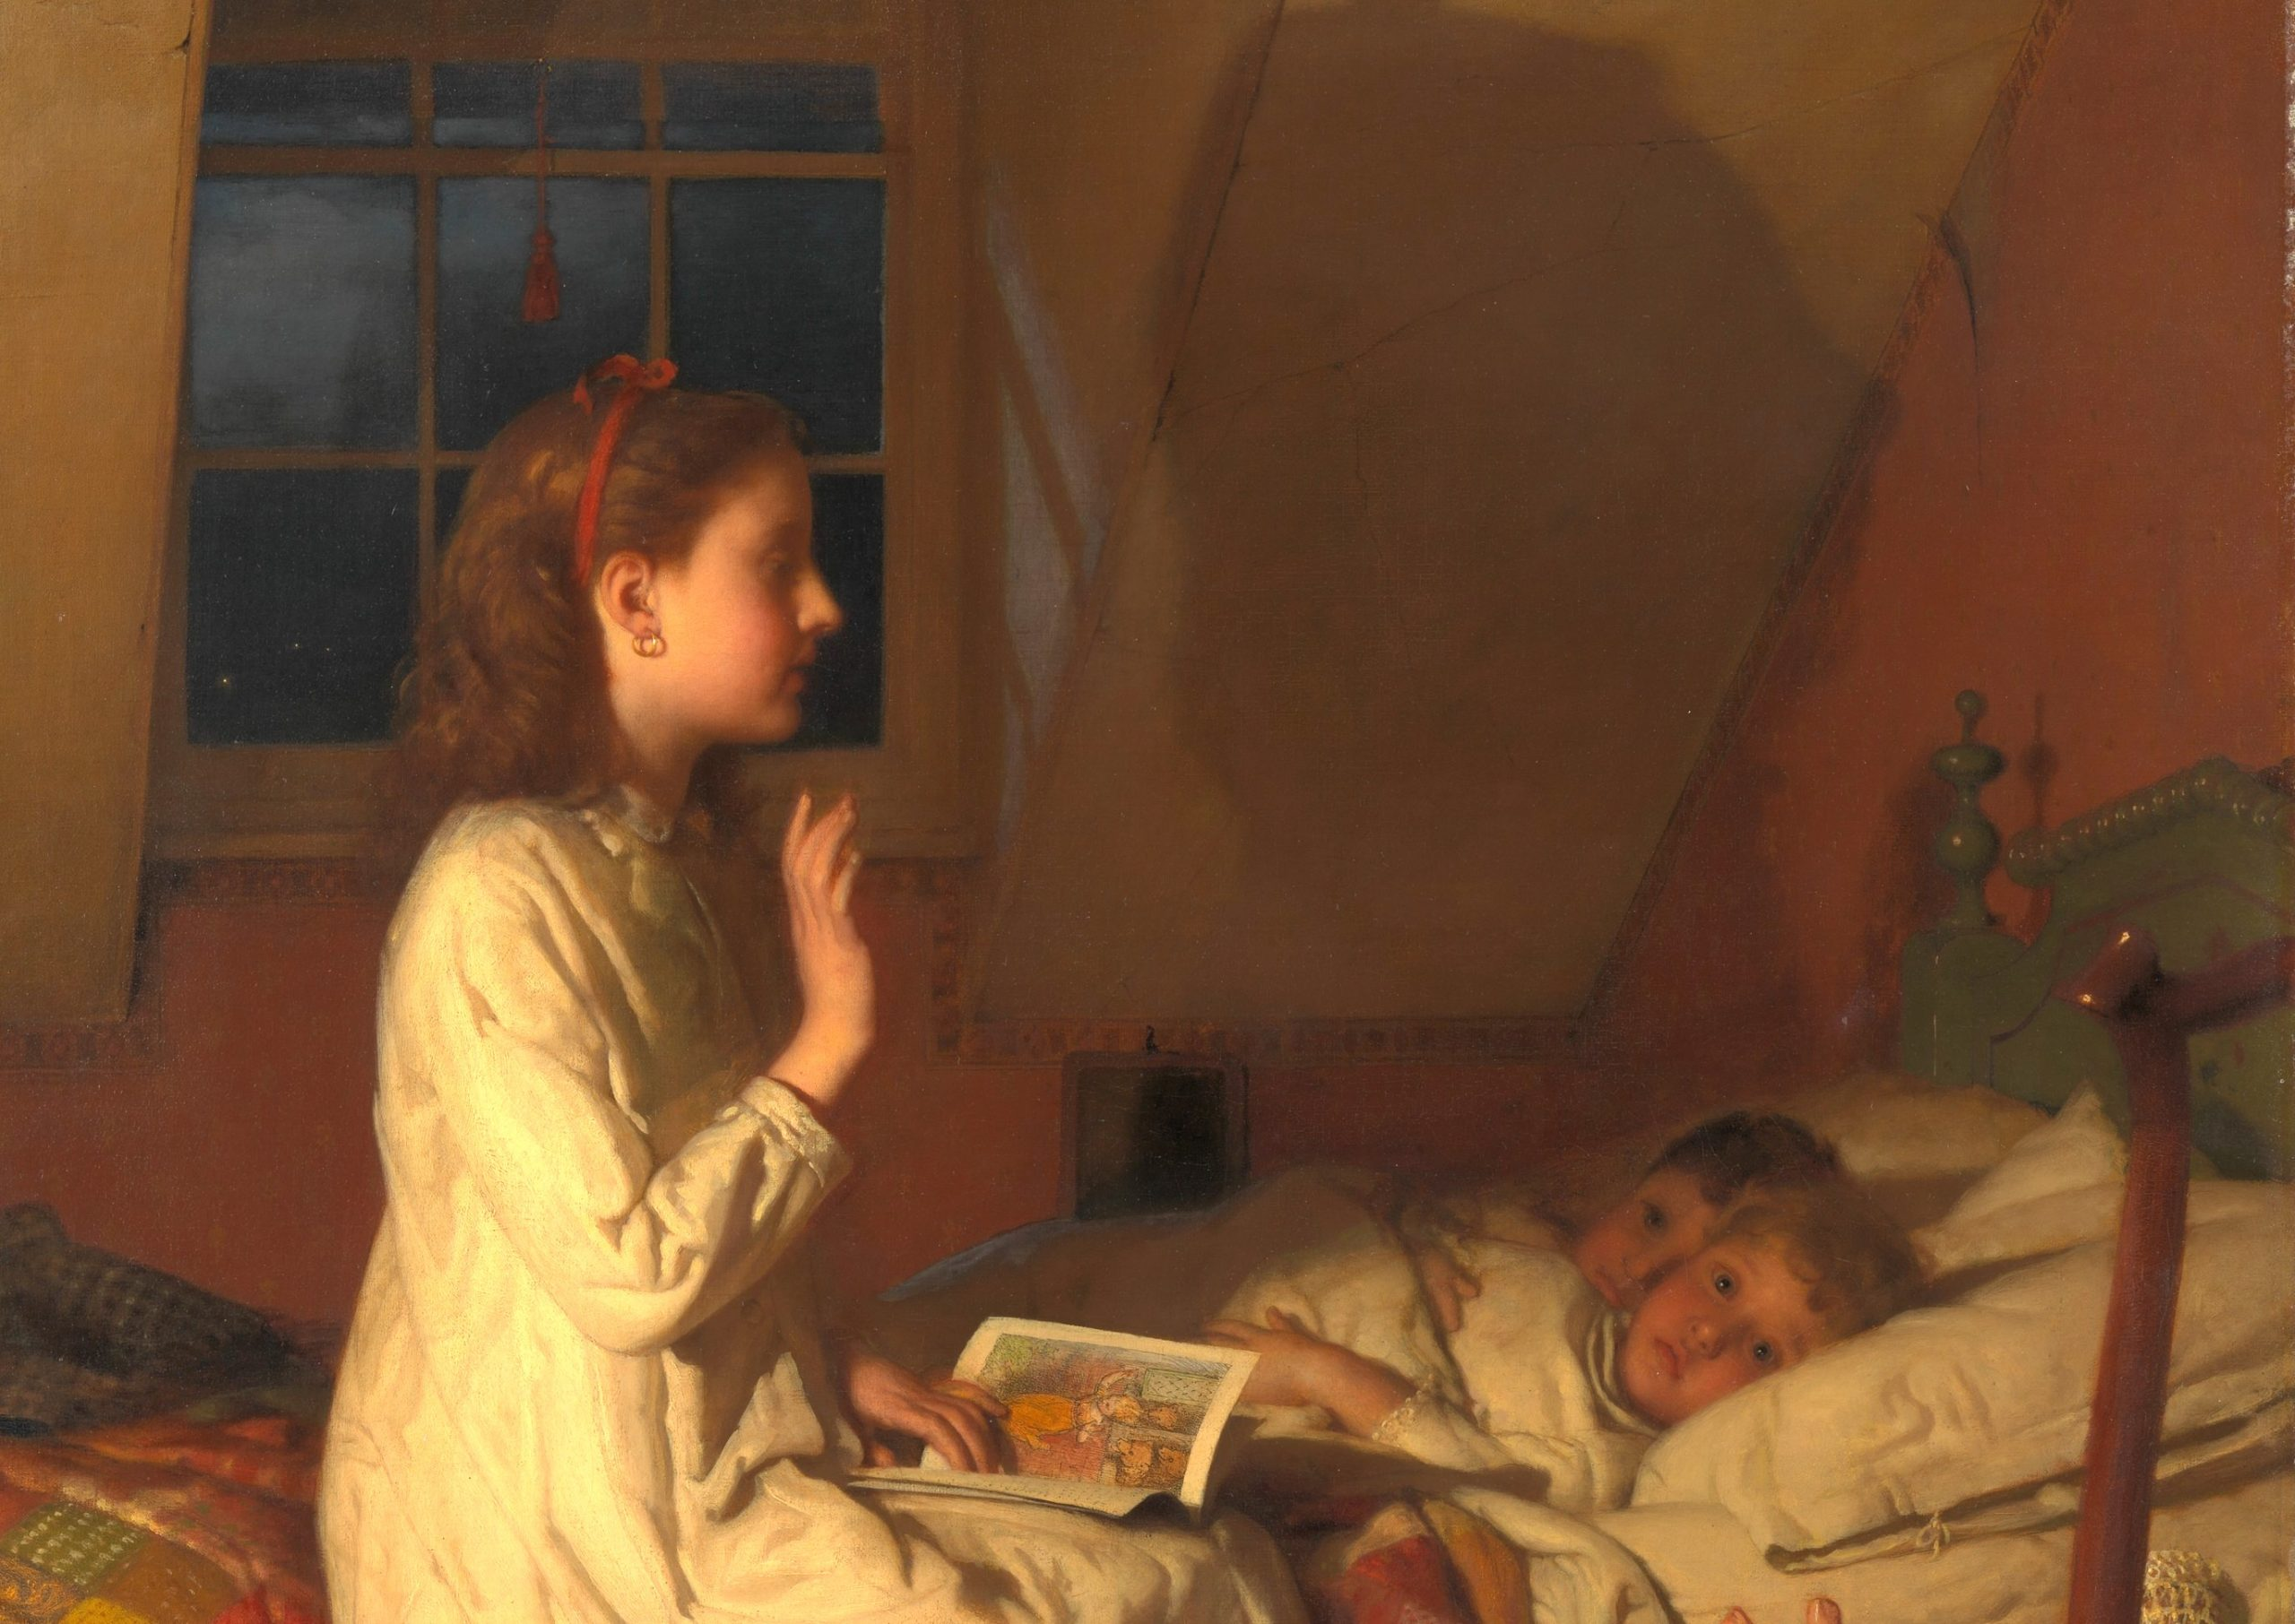 Story of Golden Locks (ca. 1870) by Seymour Joseph Guy.